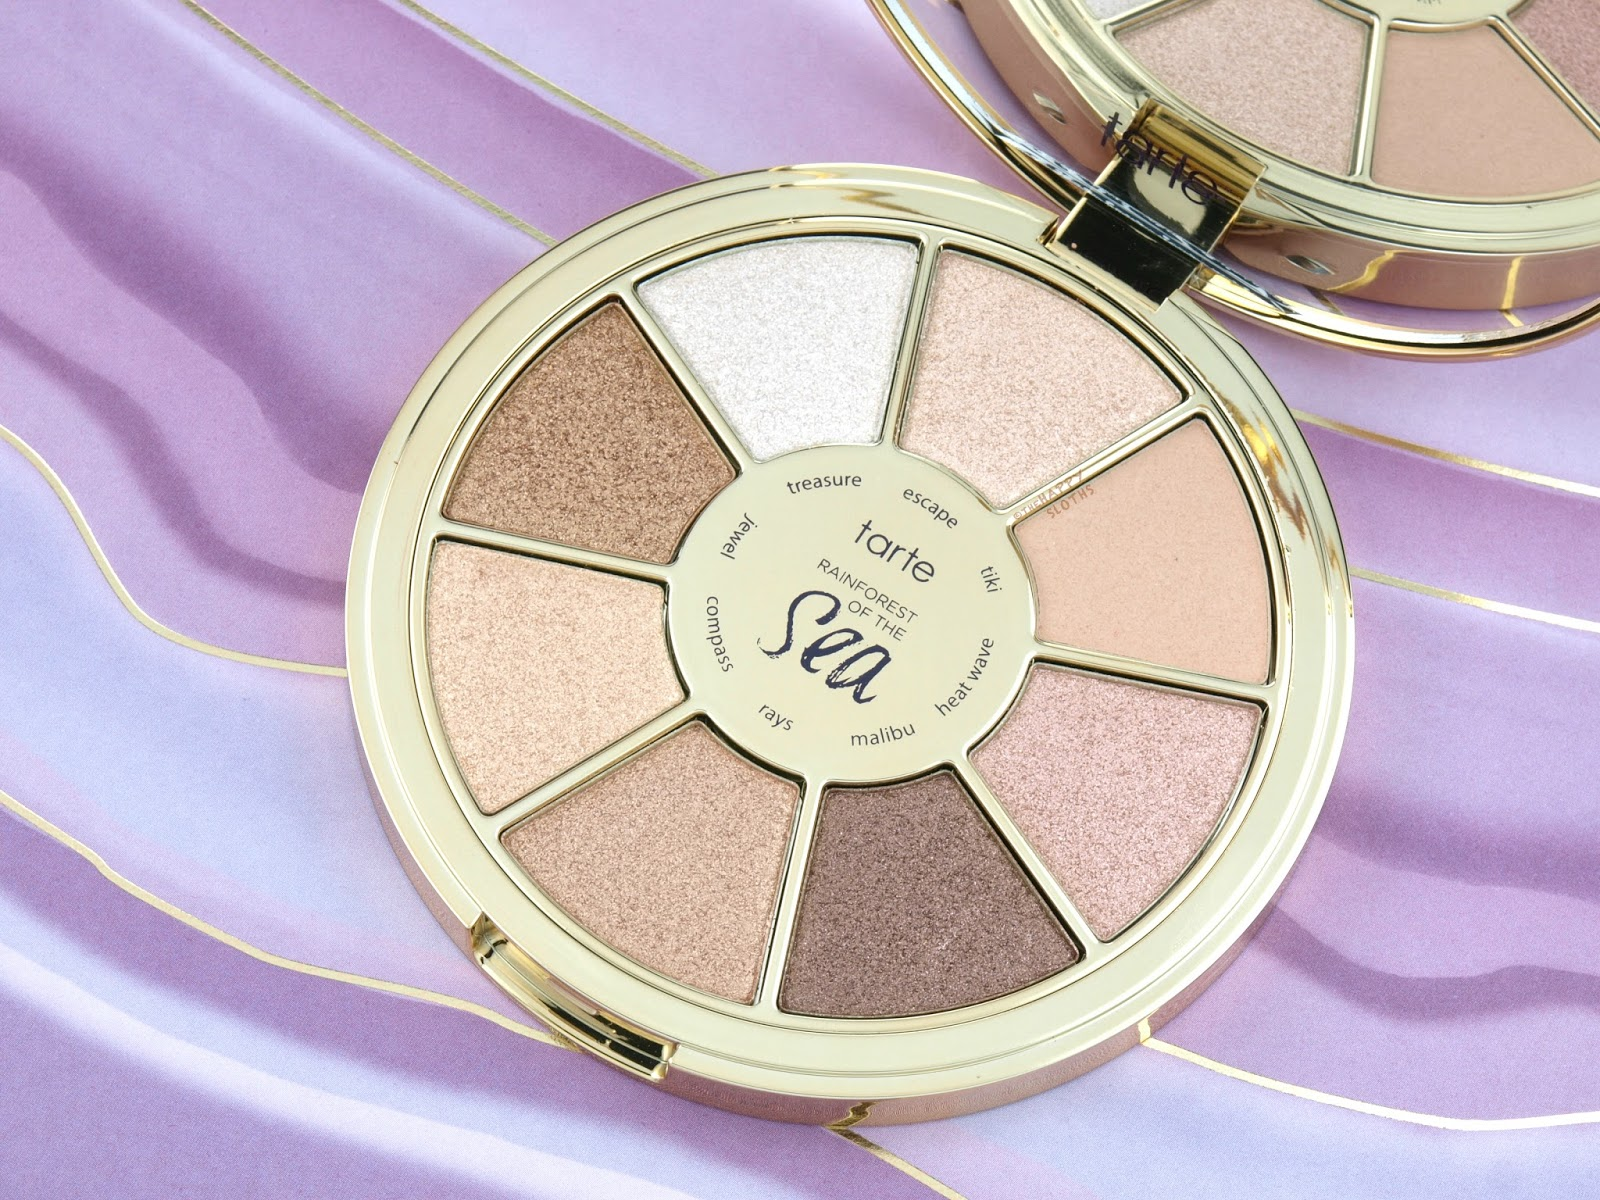 Tarte Rainforest of the Sea Volume III Eyeshadow Palette: Review and Swatches